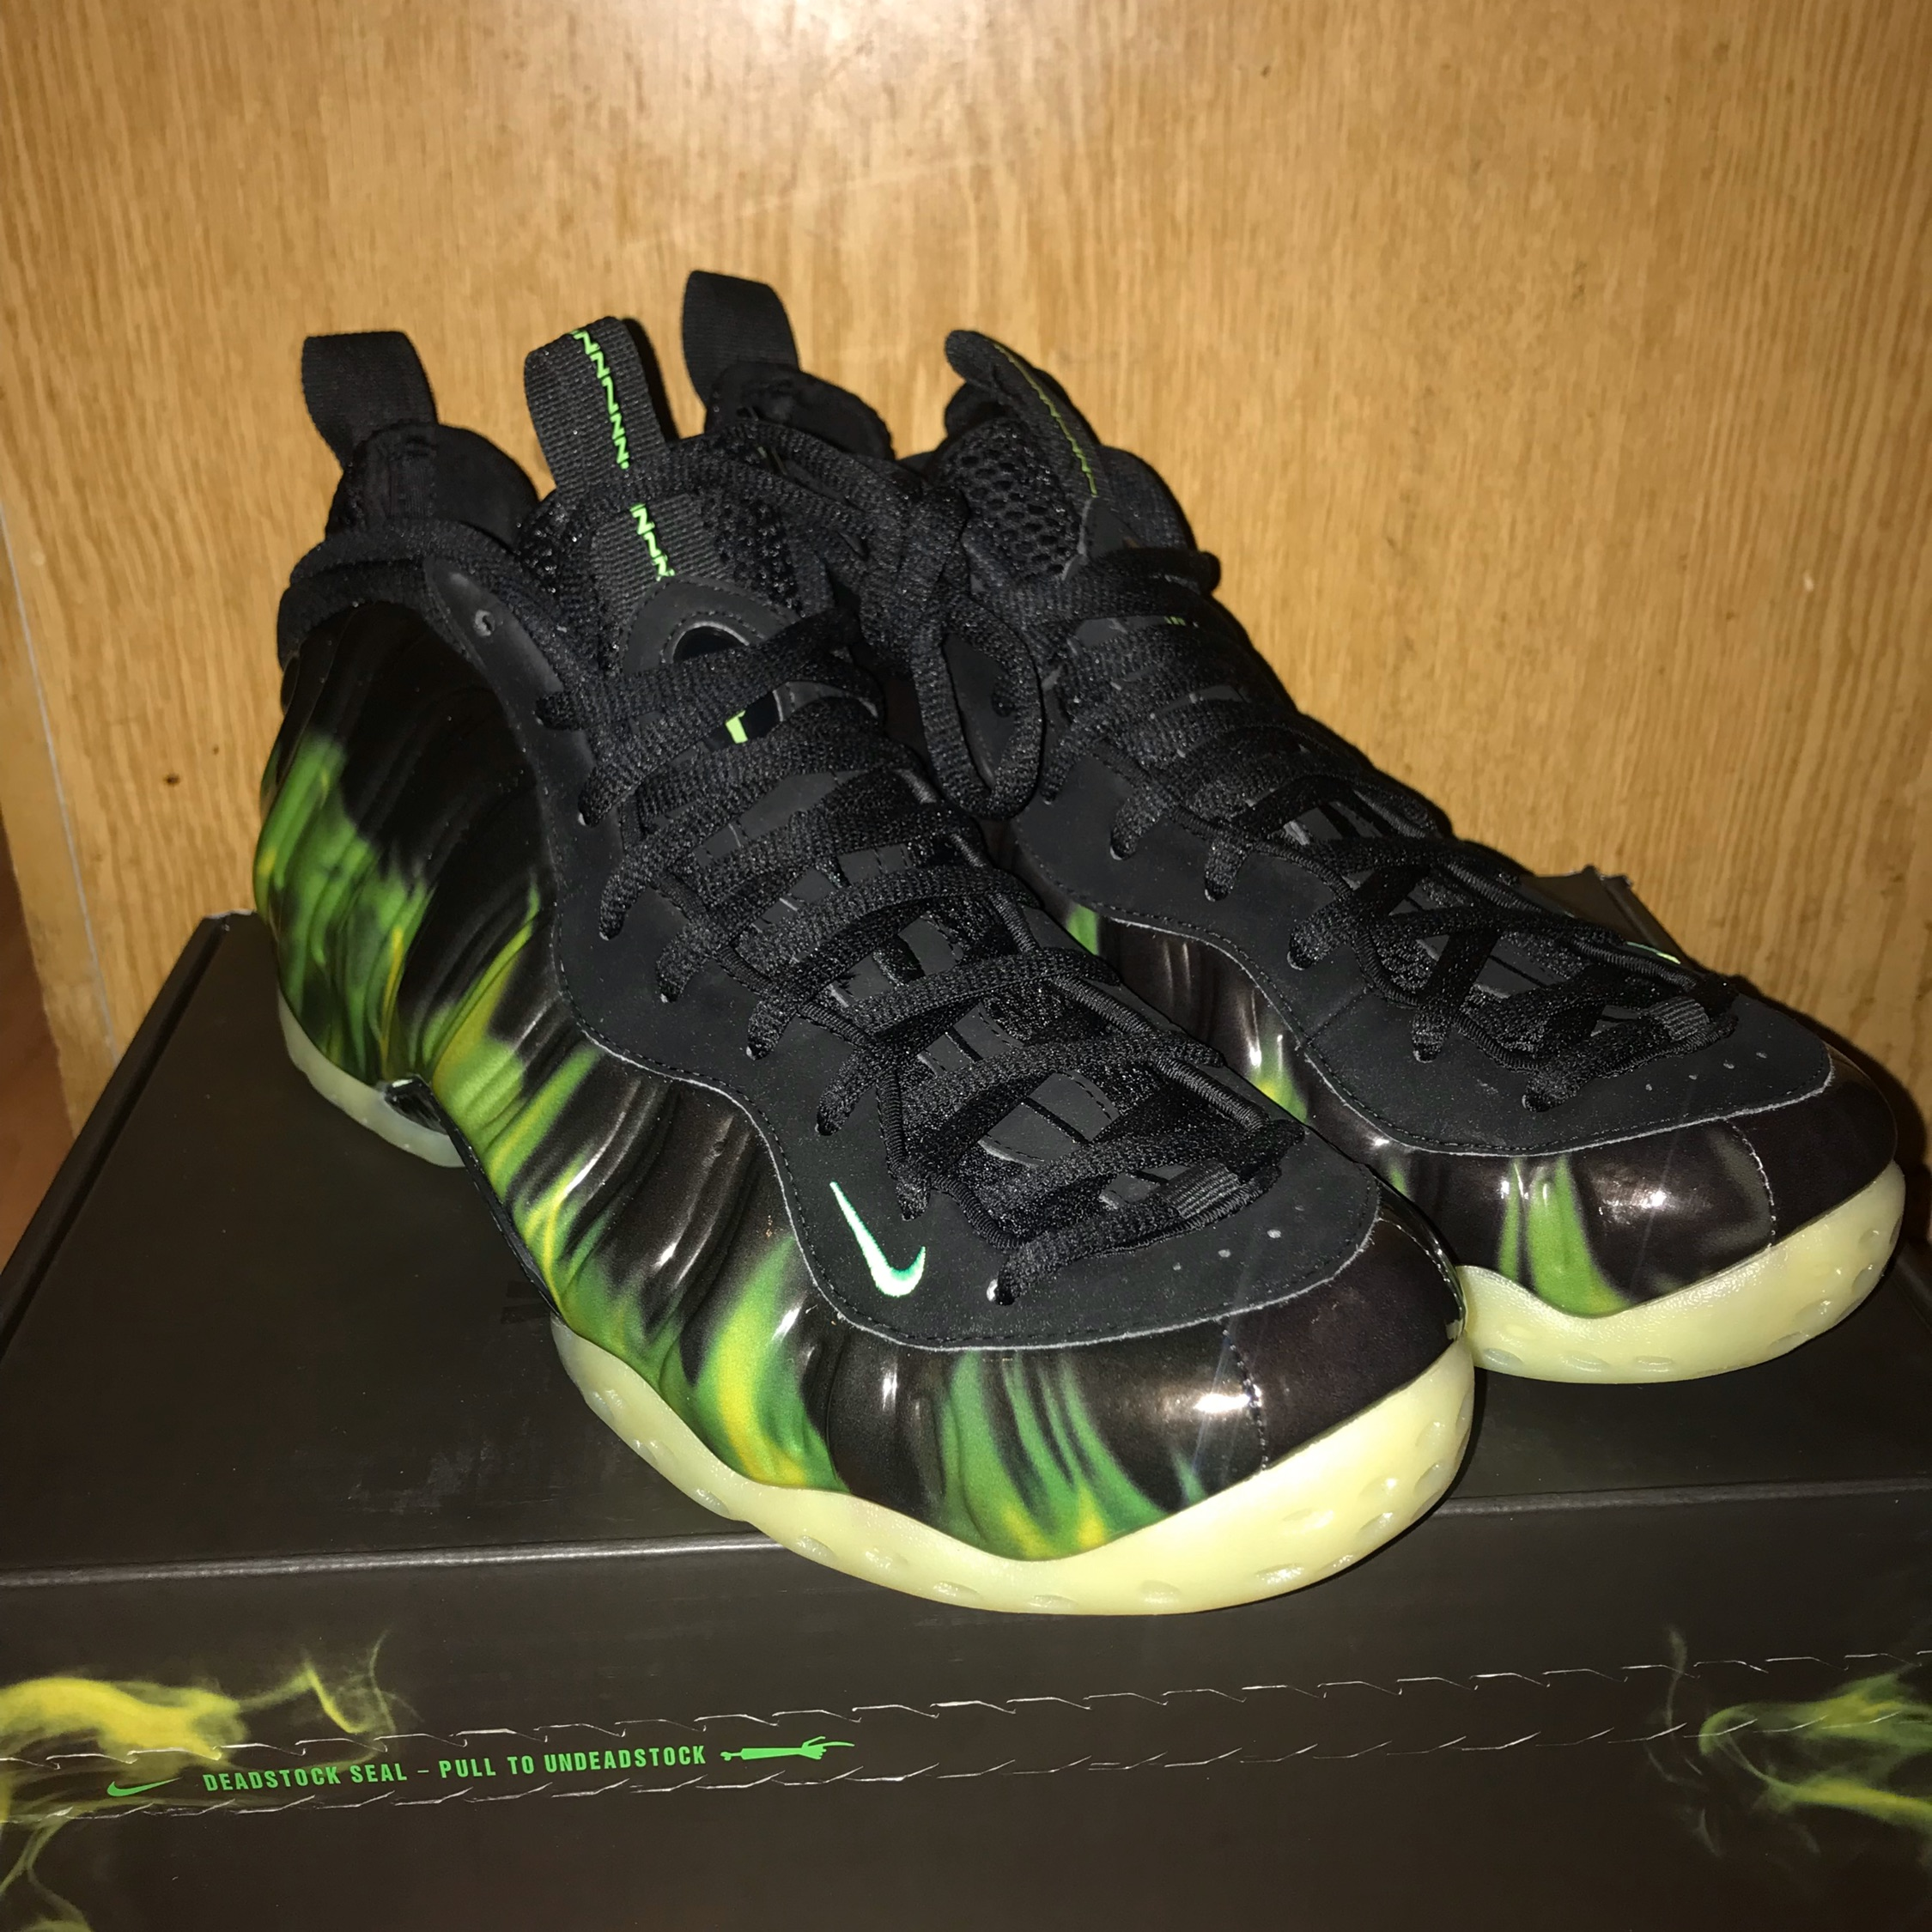 Nike Air Foamposite One Eggplant The Athlete s Foot North ...